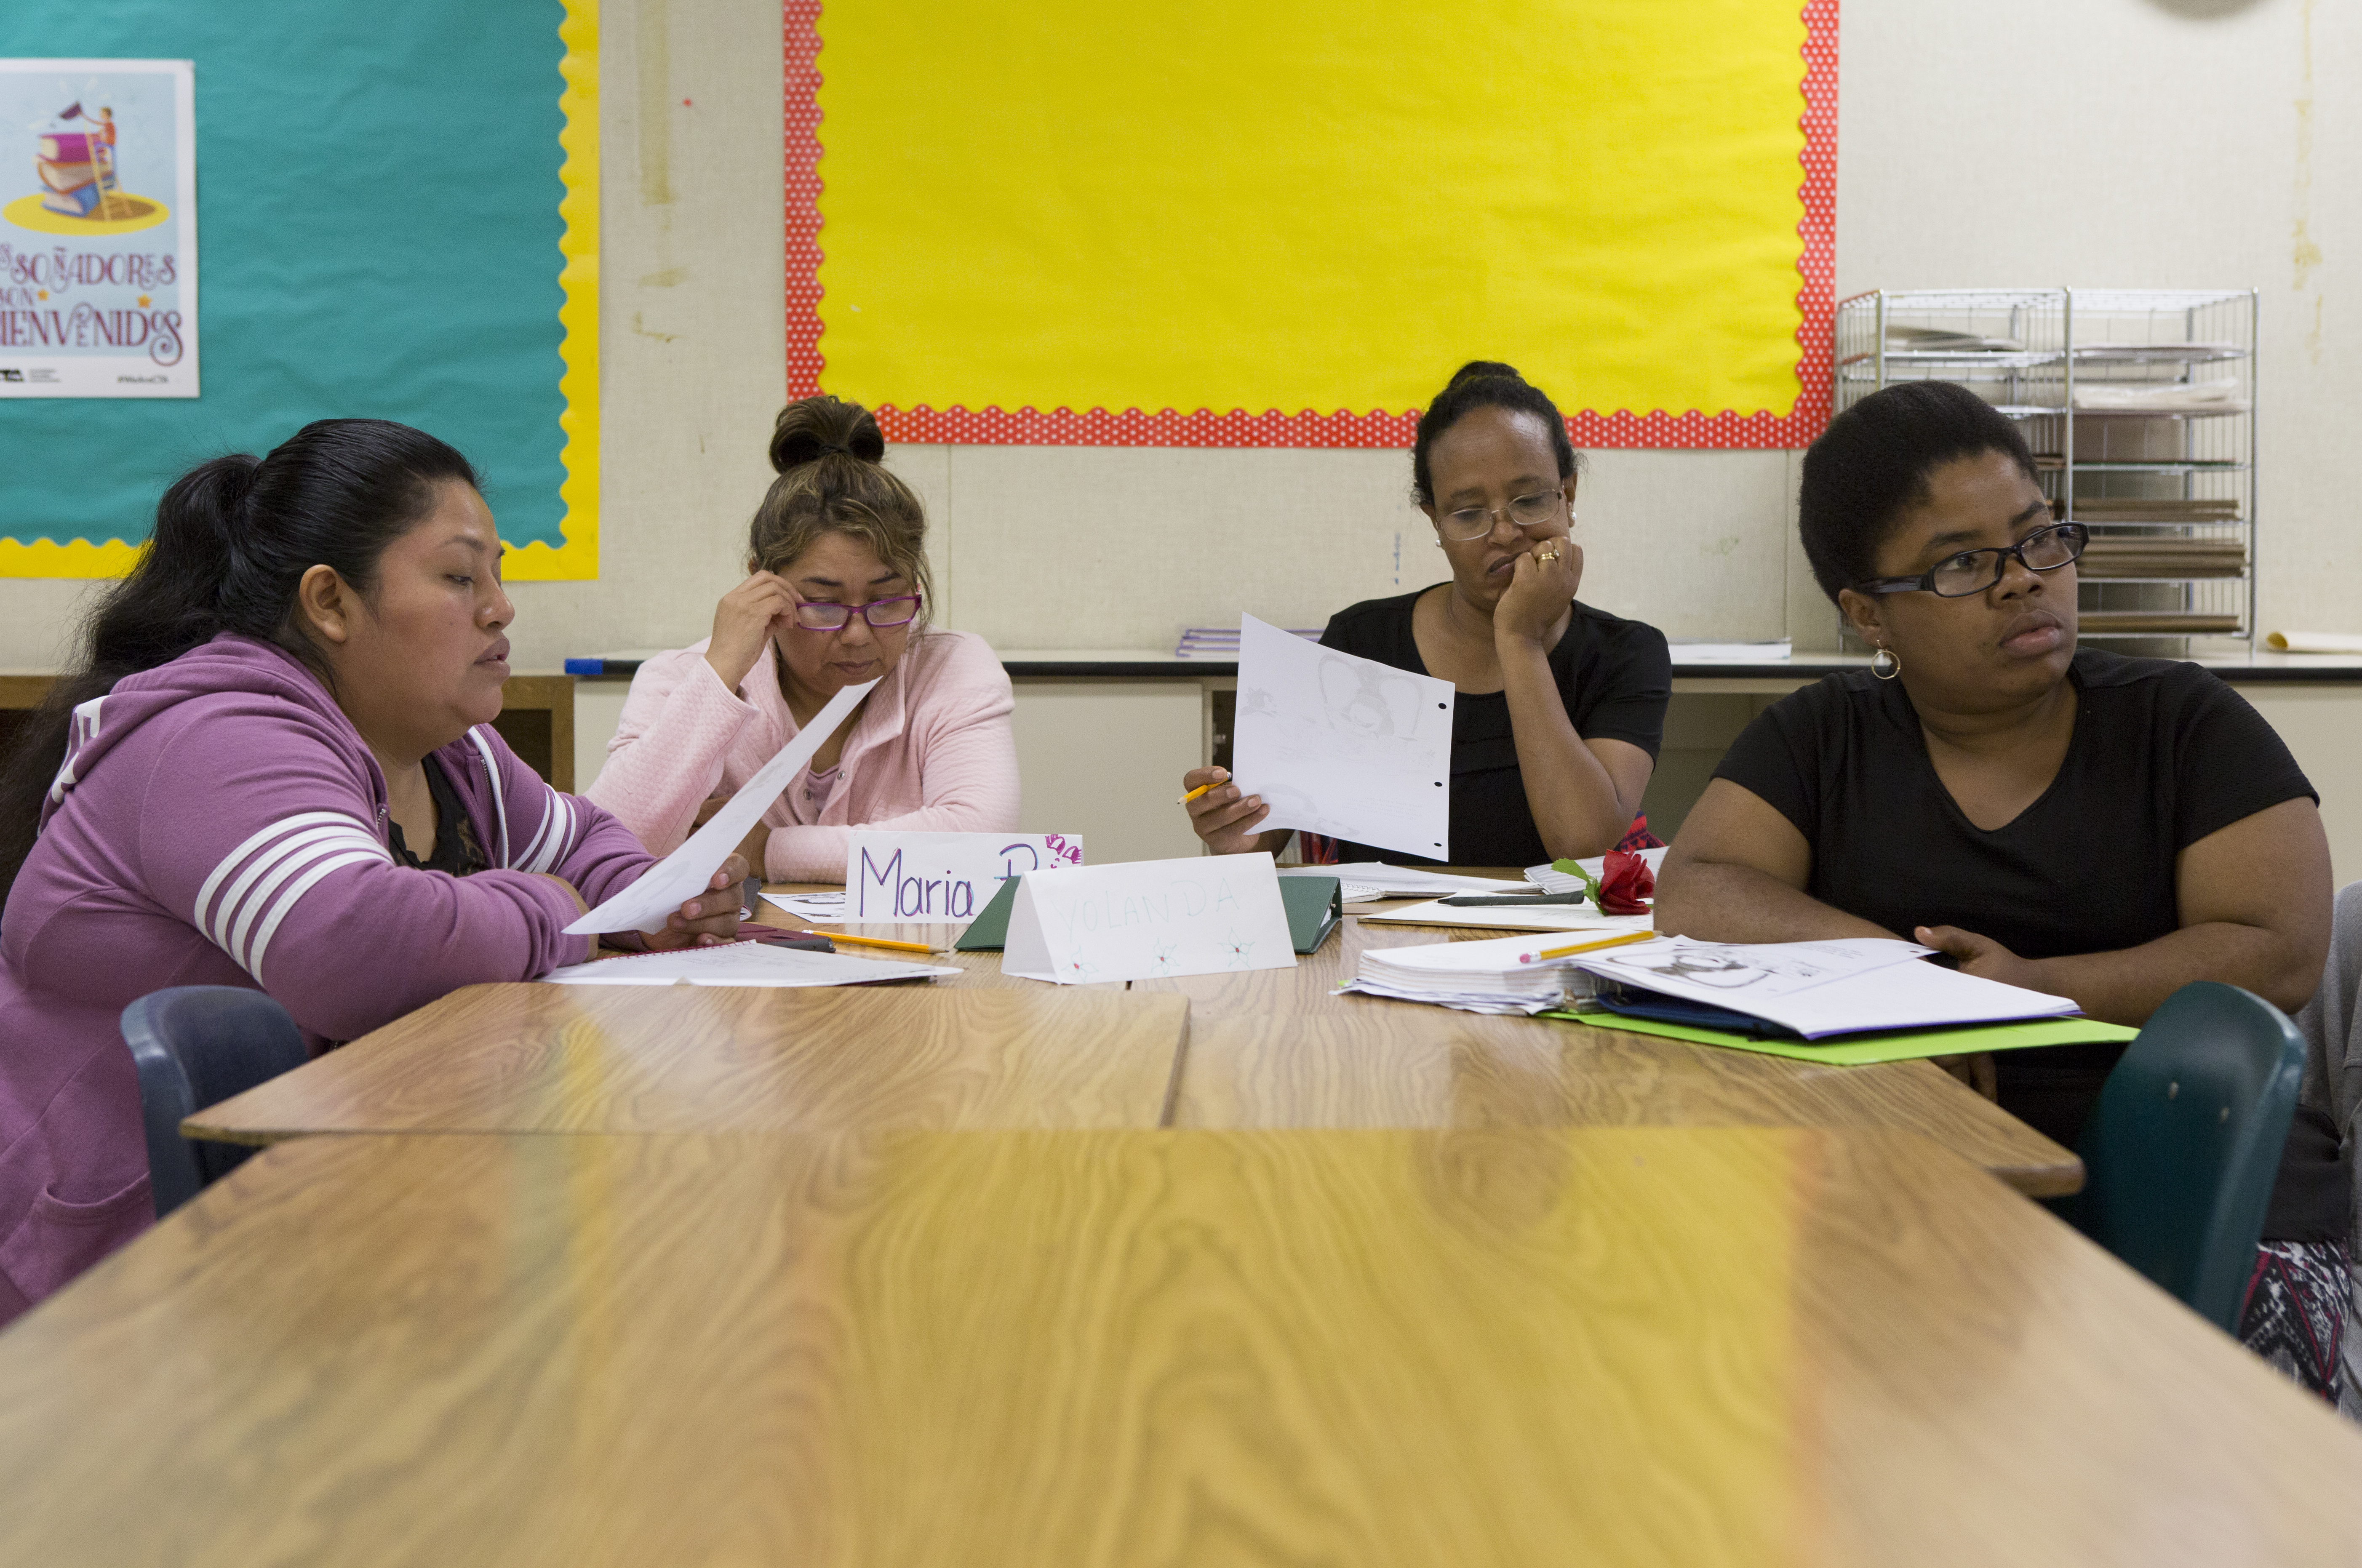 For women sit around elementary classroom tables, holding and reading papers